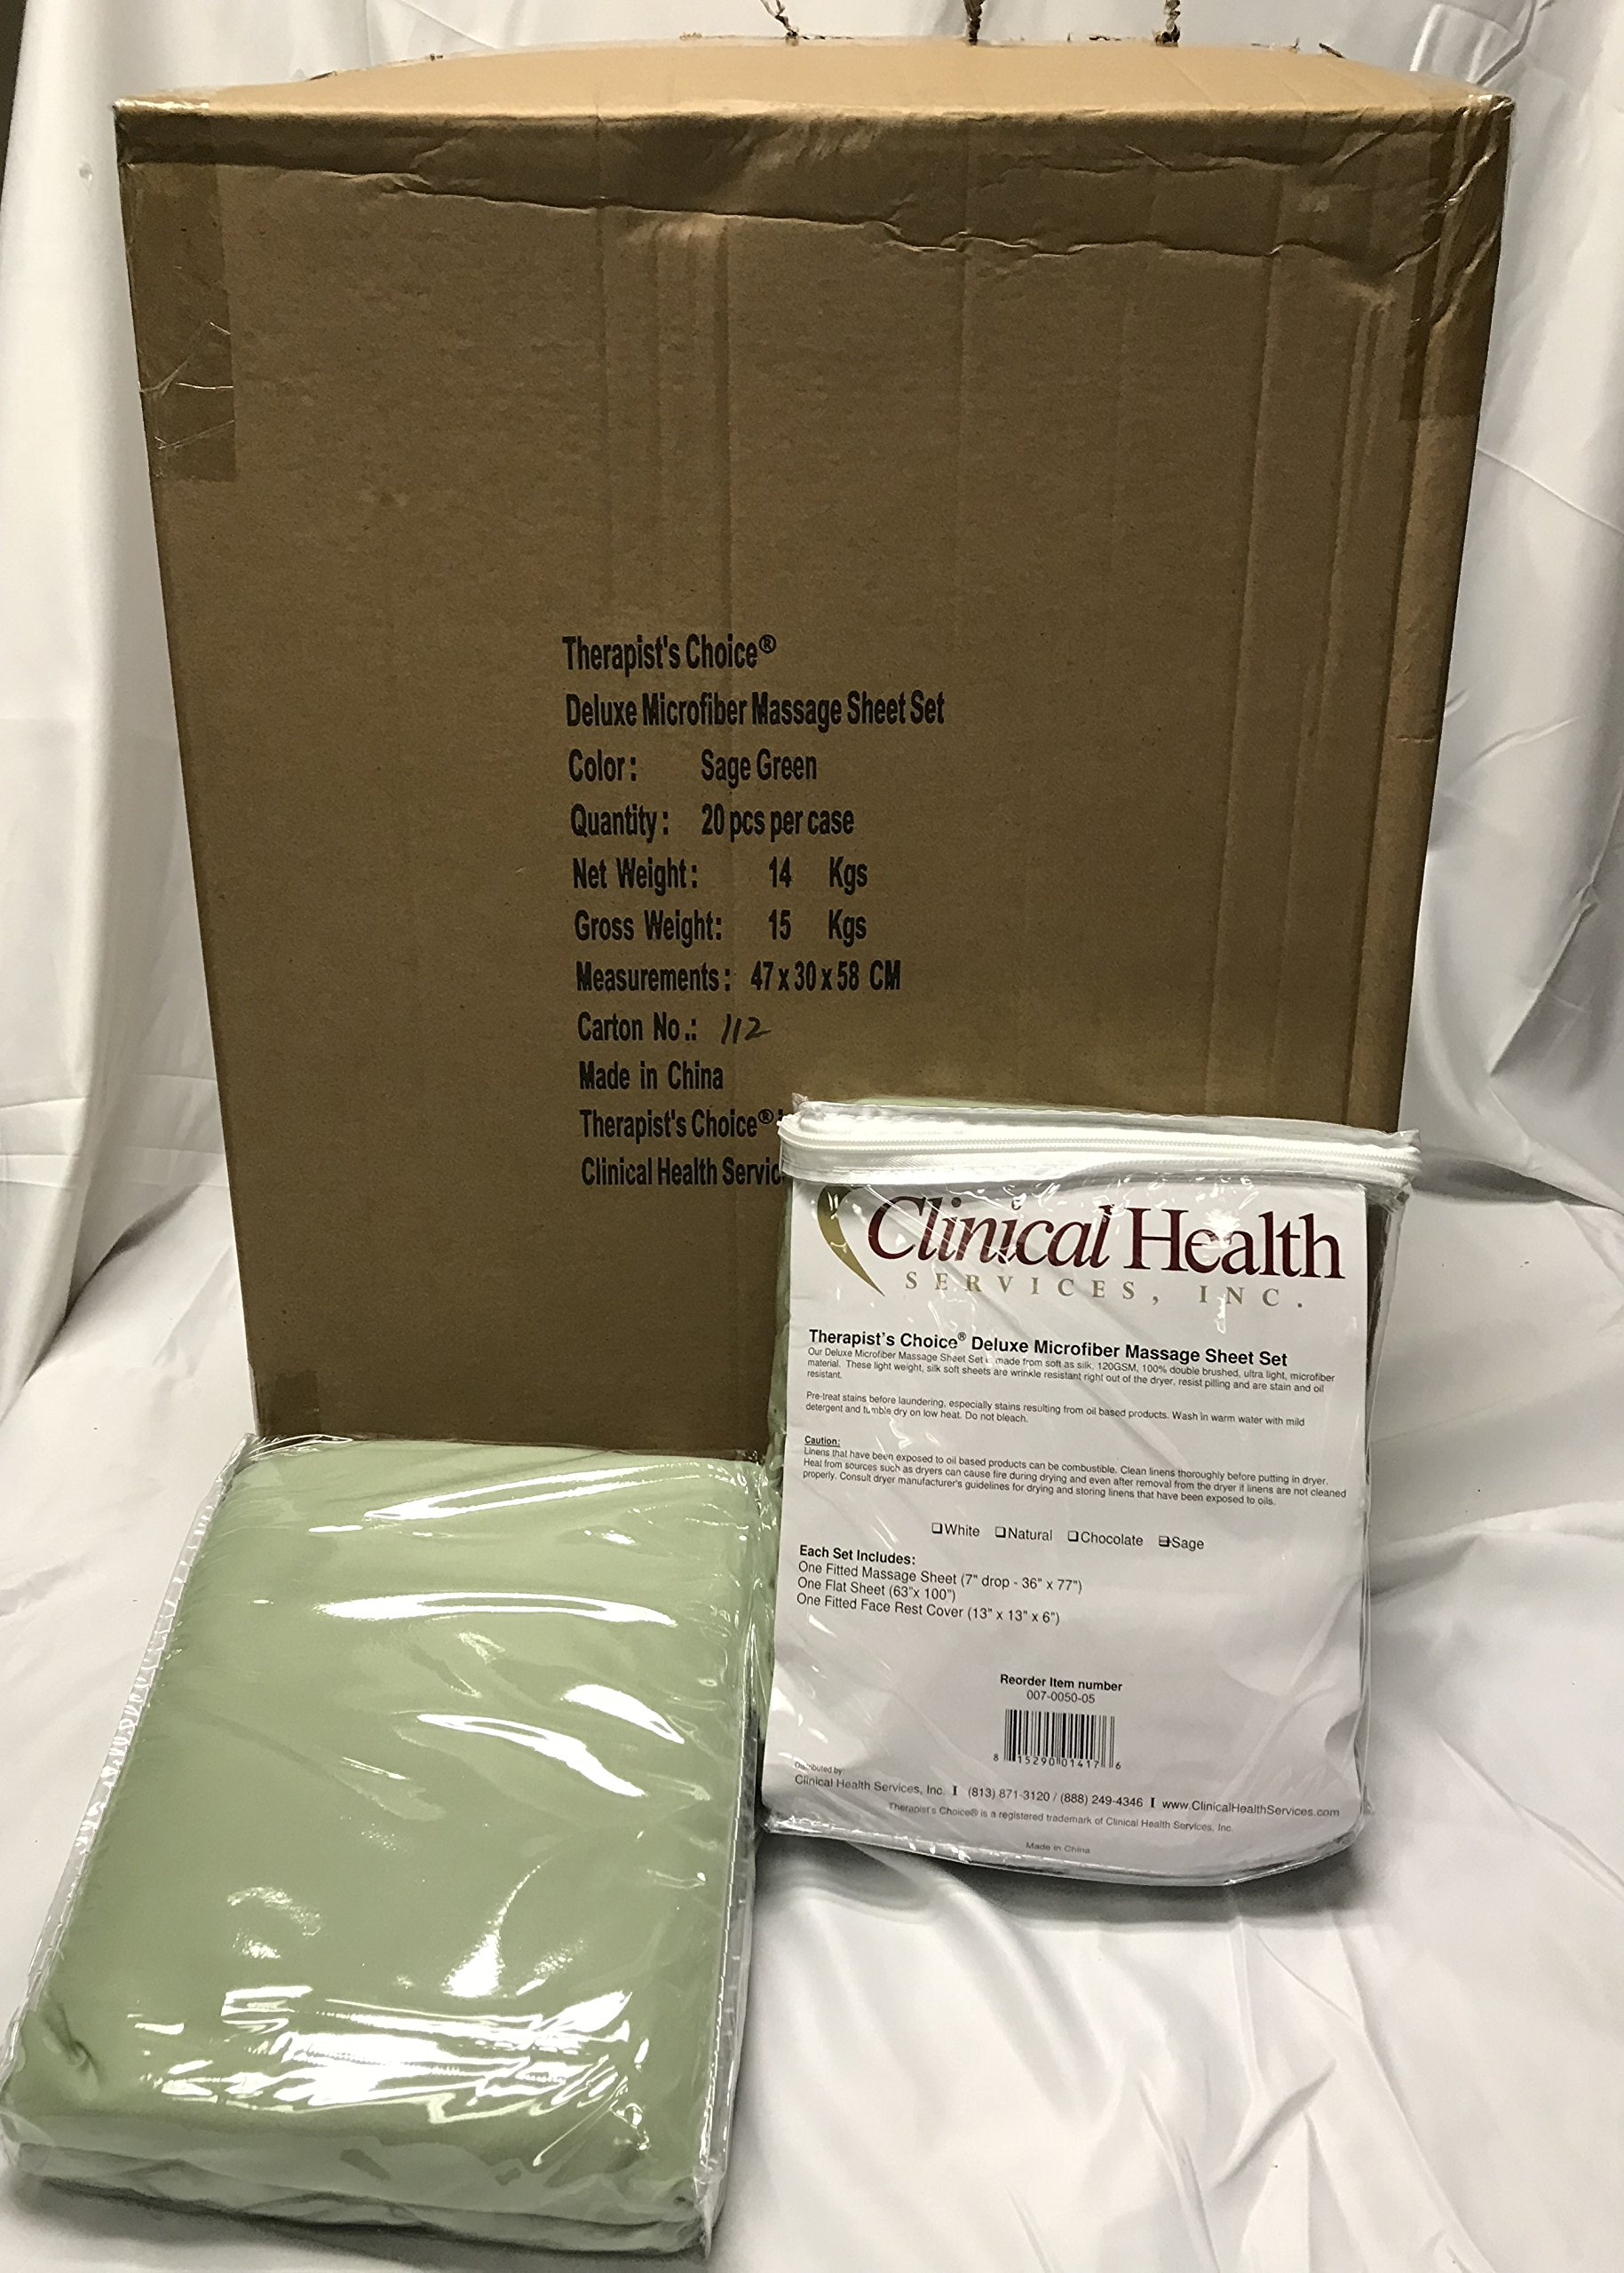 Therapist's Choice® Premium Deluxe Microfiber Massage Sheet Set, 3pc Set (Sage Green (Case of 20 Sets))